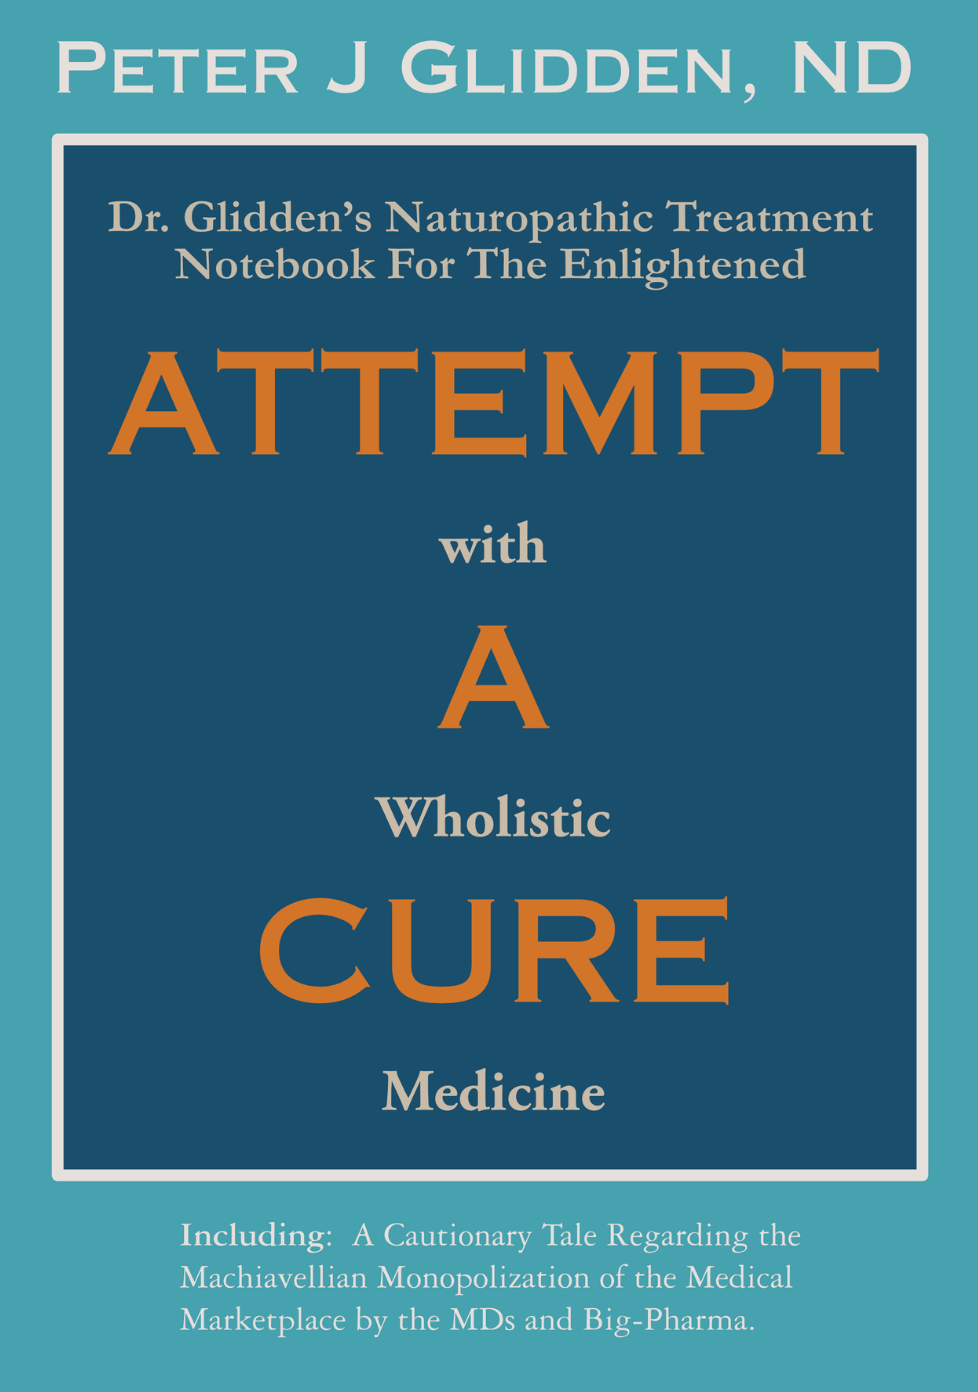 attemp a cure book glidden amazon.png